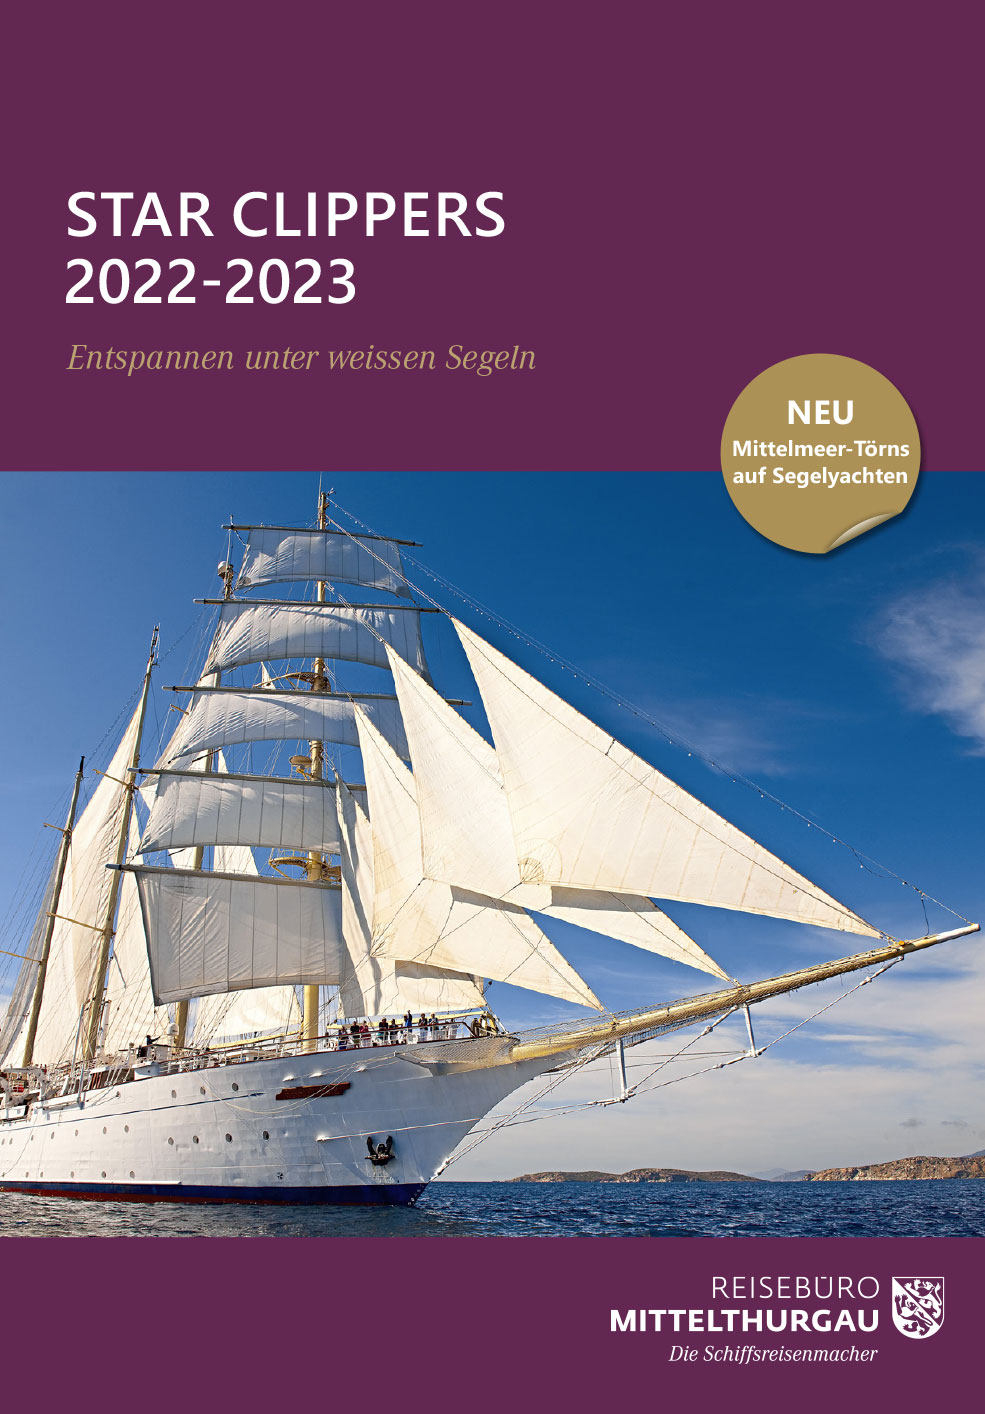 Star Clippers 2022